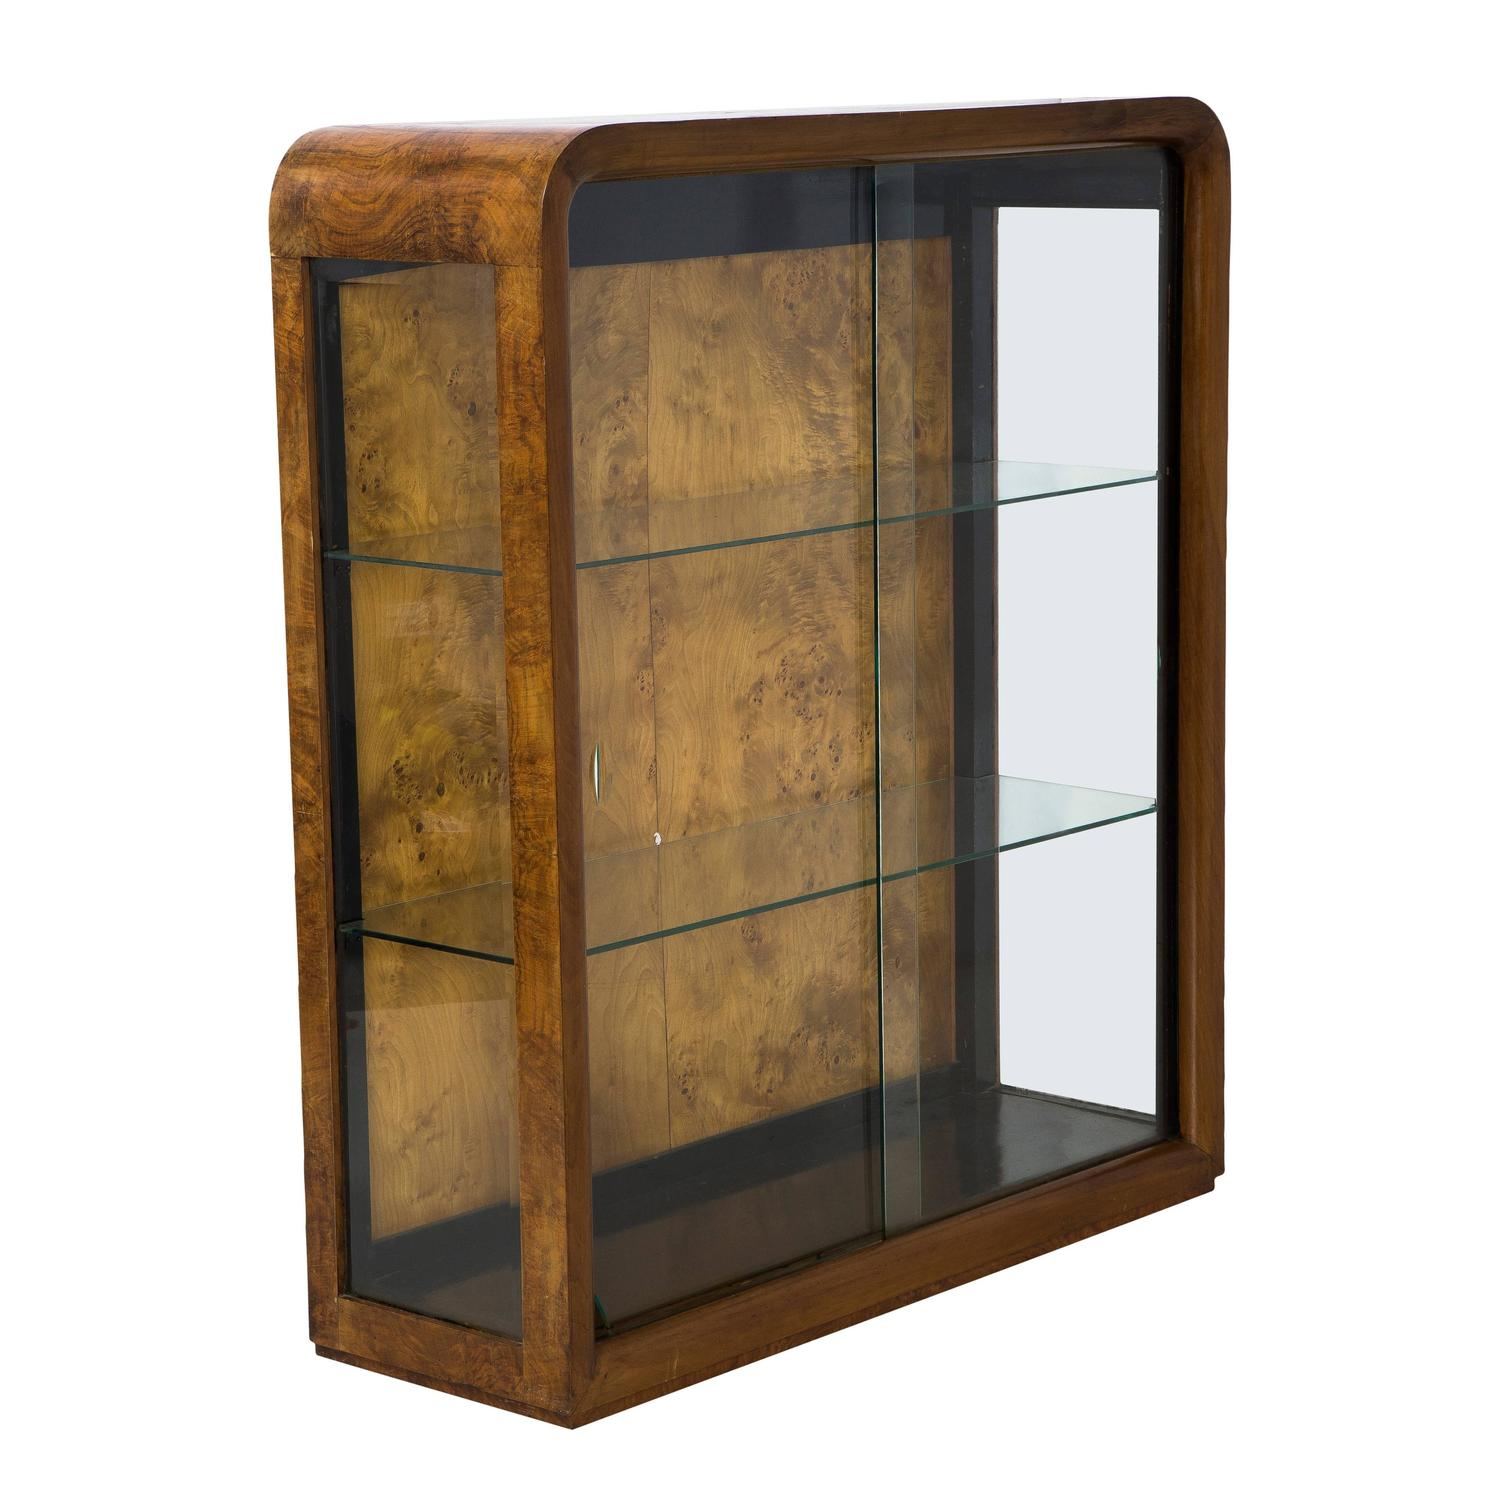 art deco lit display case cabinet at 1stdibs. Black Bedroom Furniture Sets. Home Design Ideas